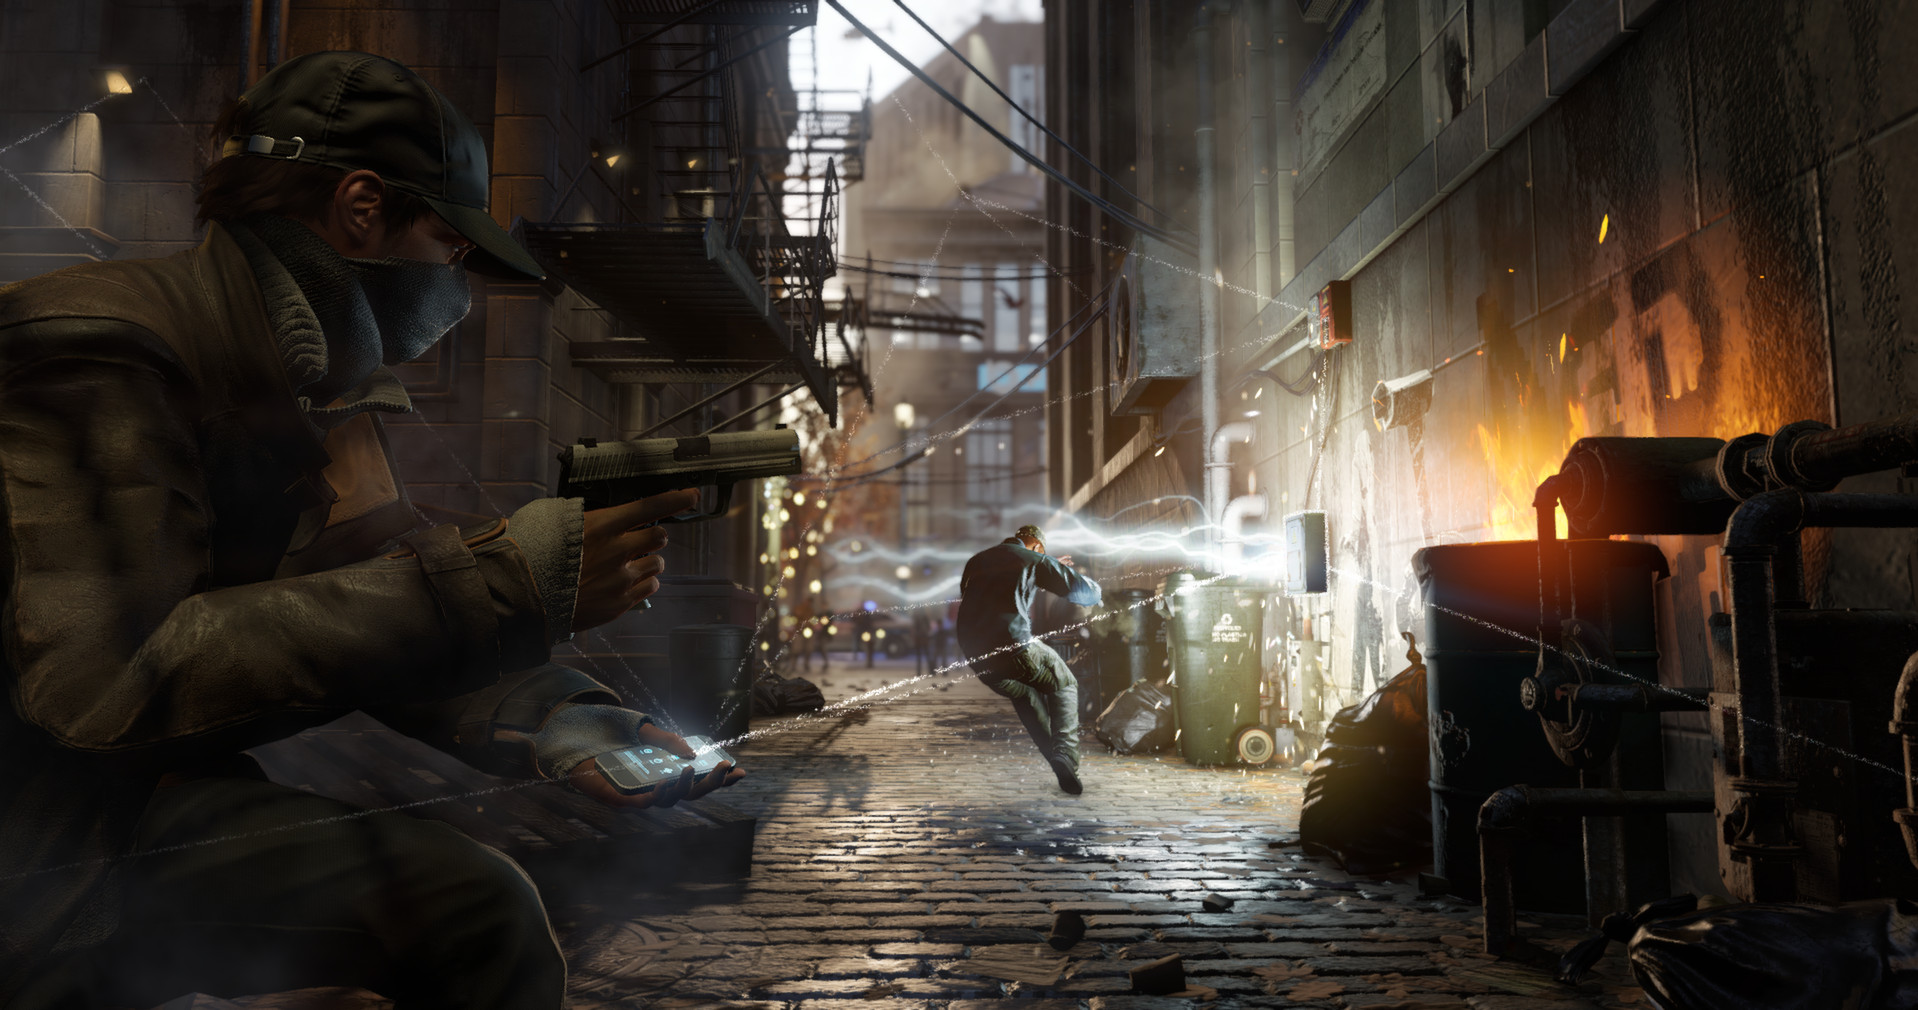 Watch_Dogs™ game image